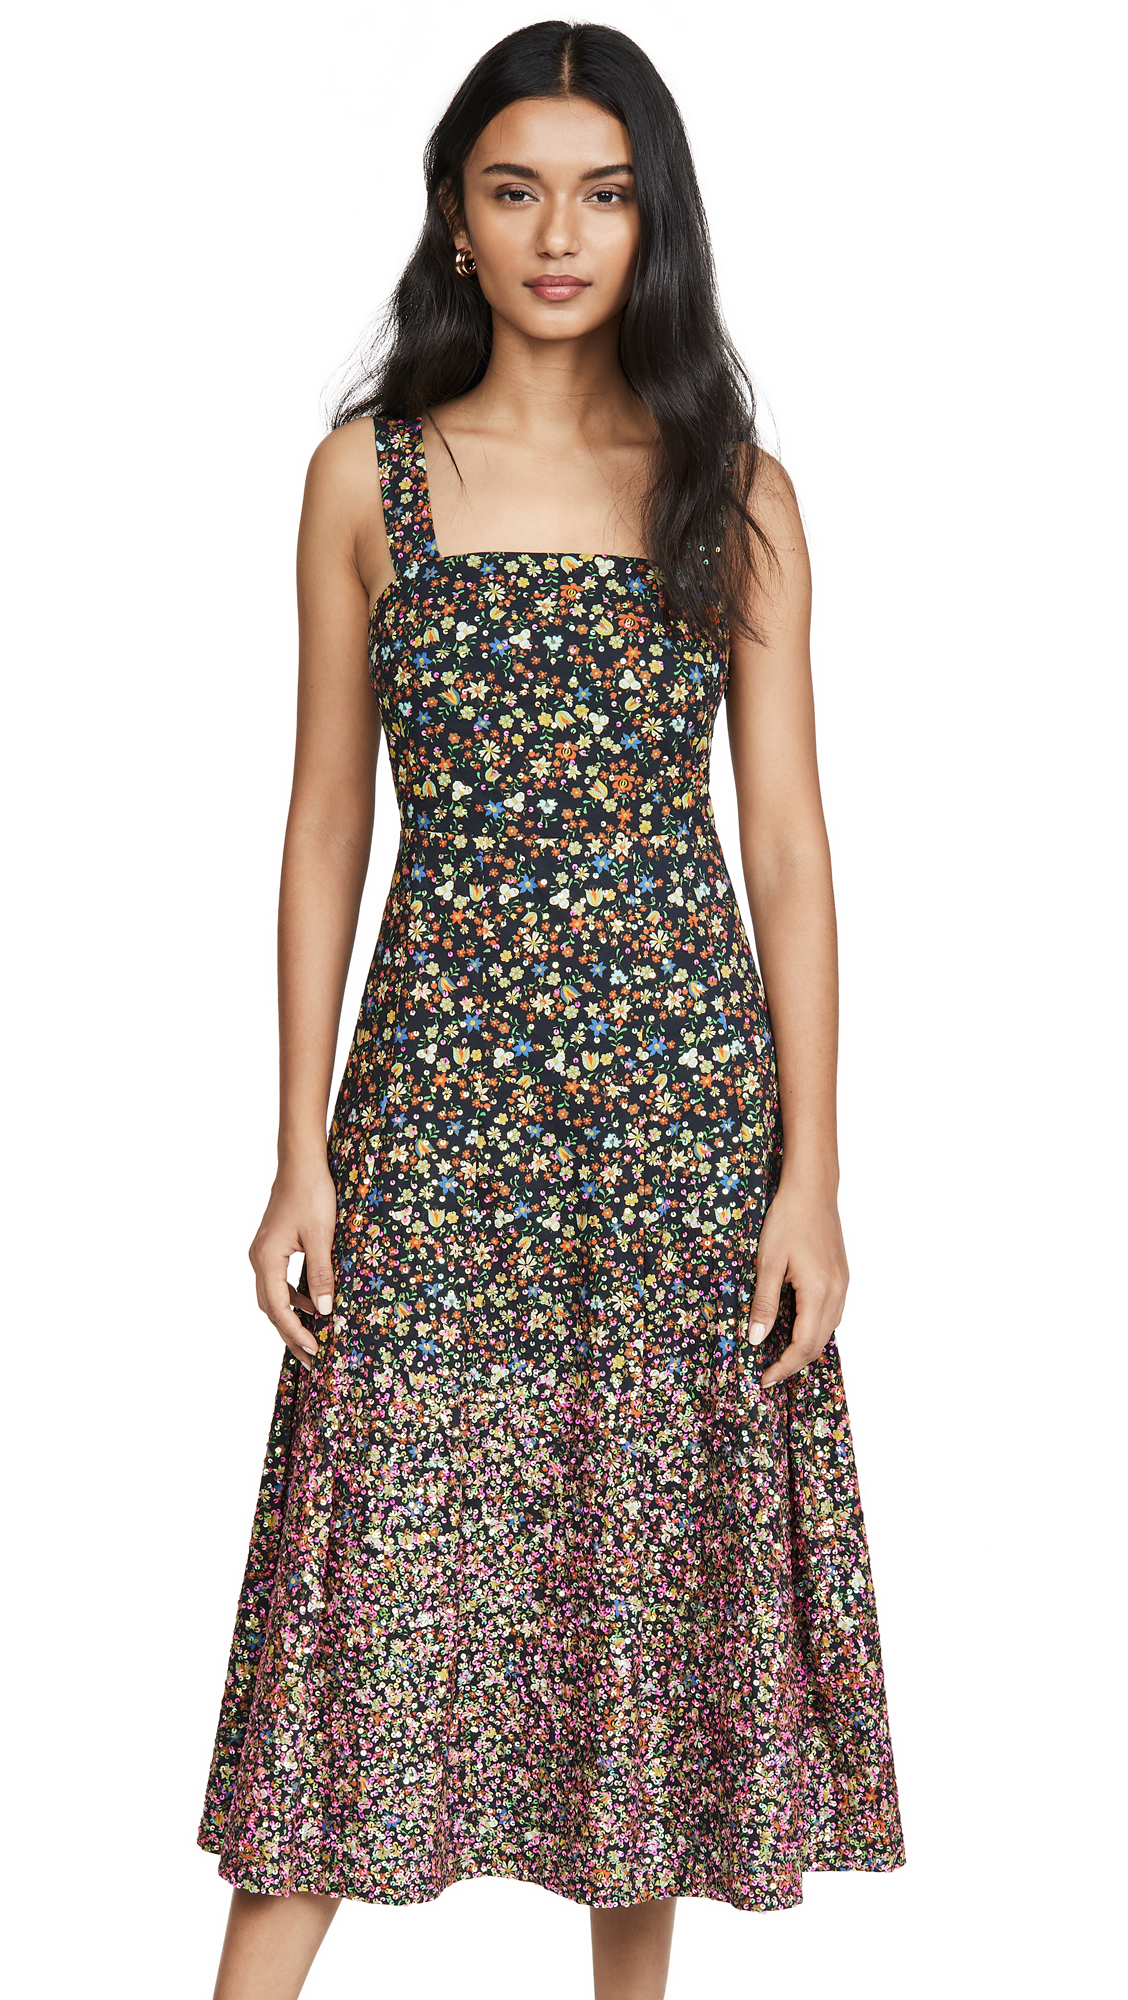 Tory Burch Sequin Embroidered Cotton Dress - 40% Off Sale